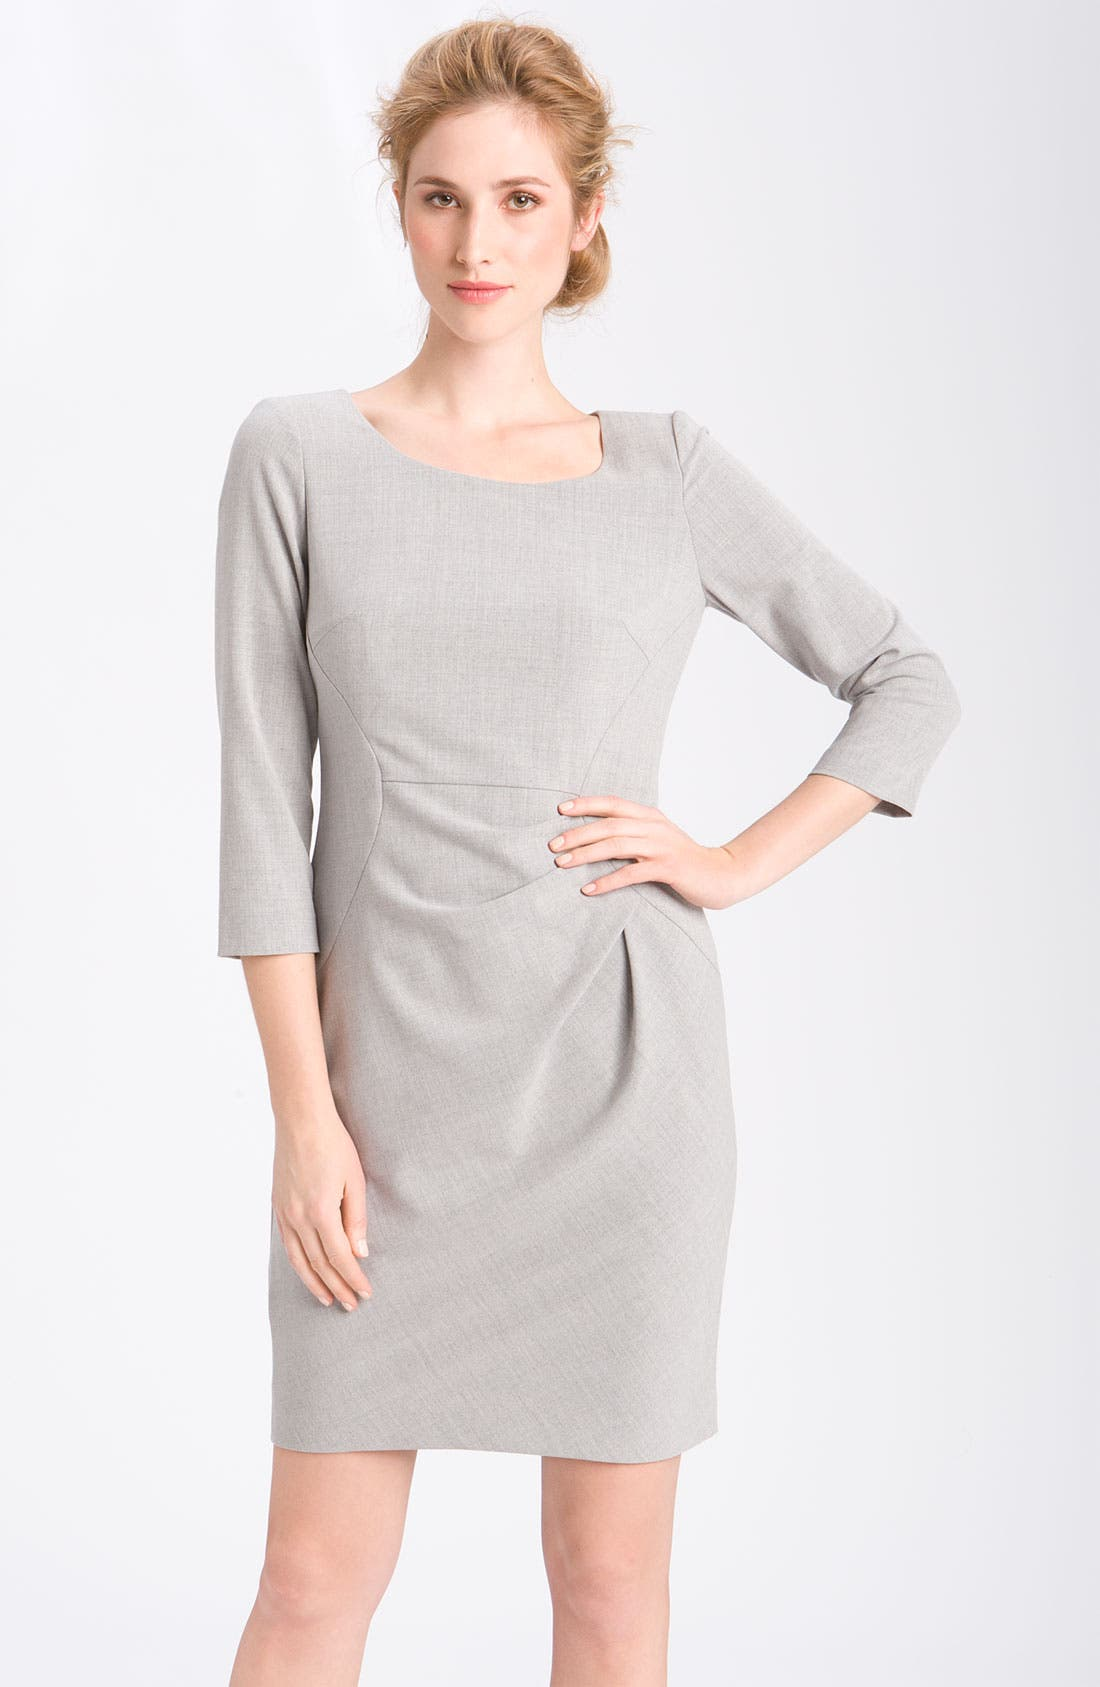 Alternate Image 1 Selected - Calvin Klein 'Stretch Luxe' Seamed Sheath Dress